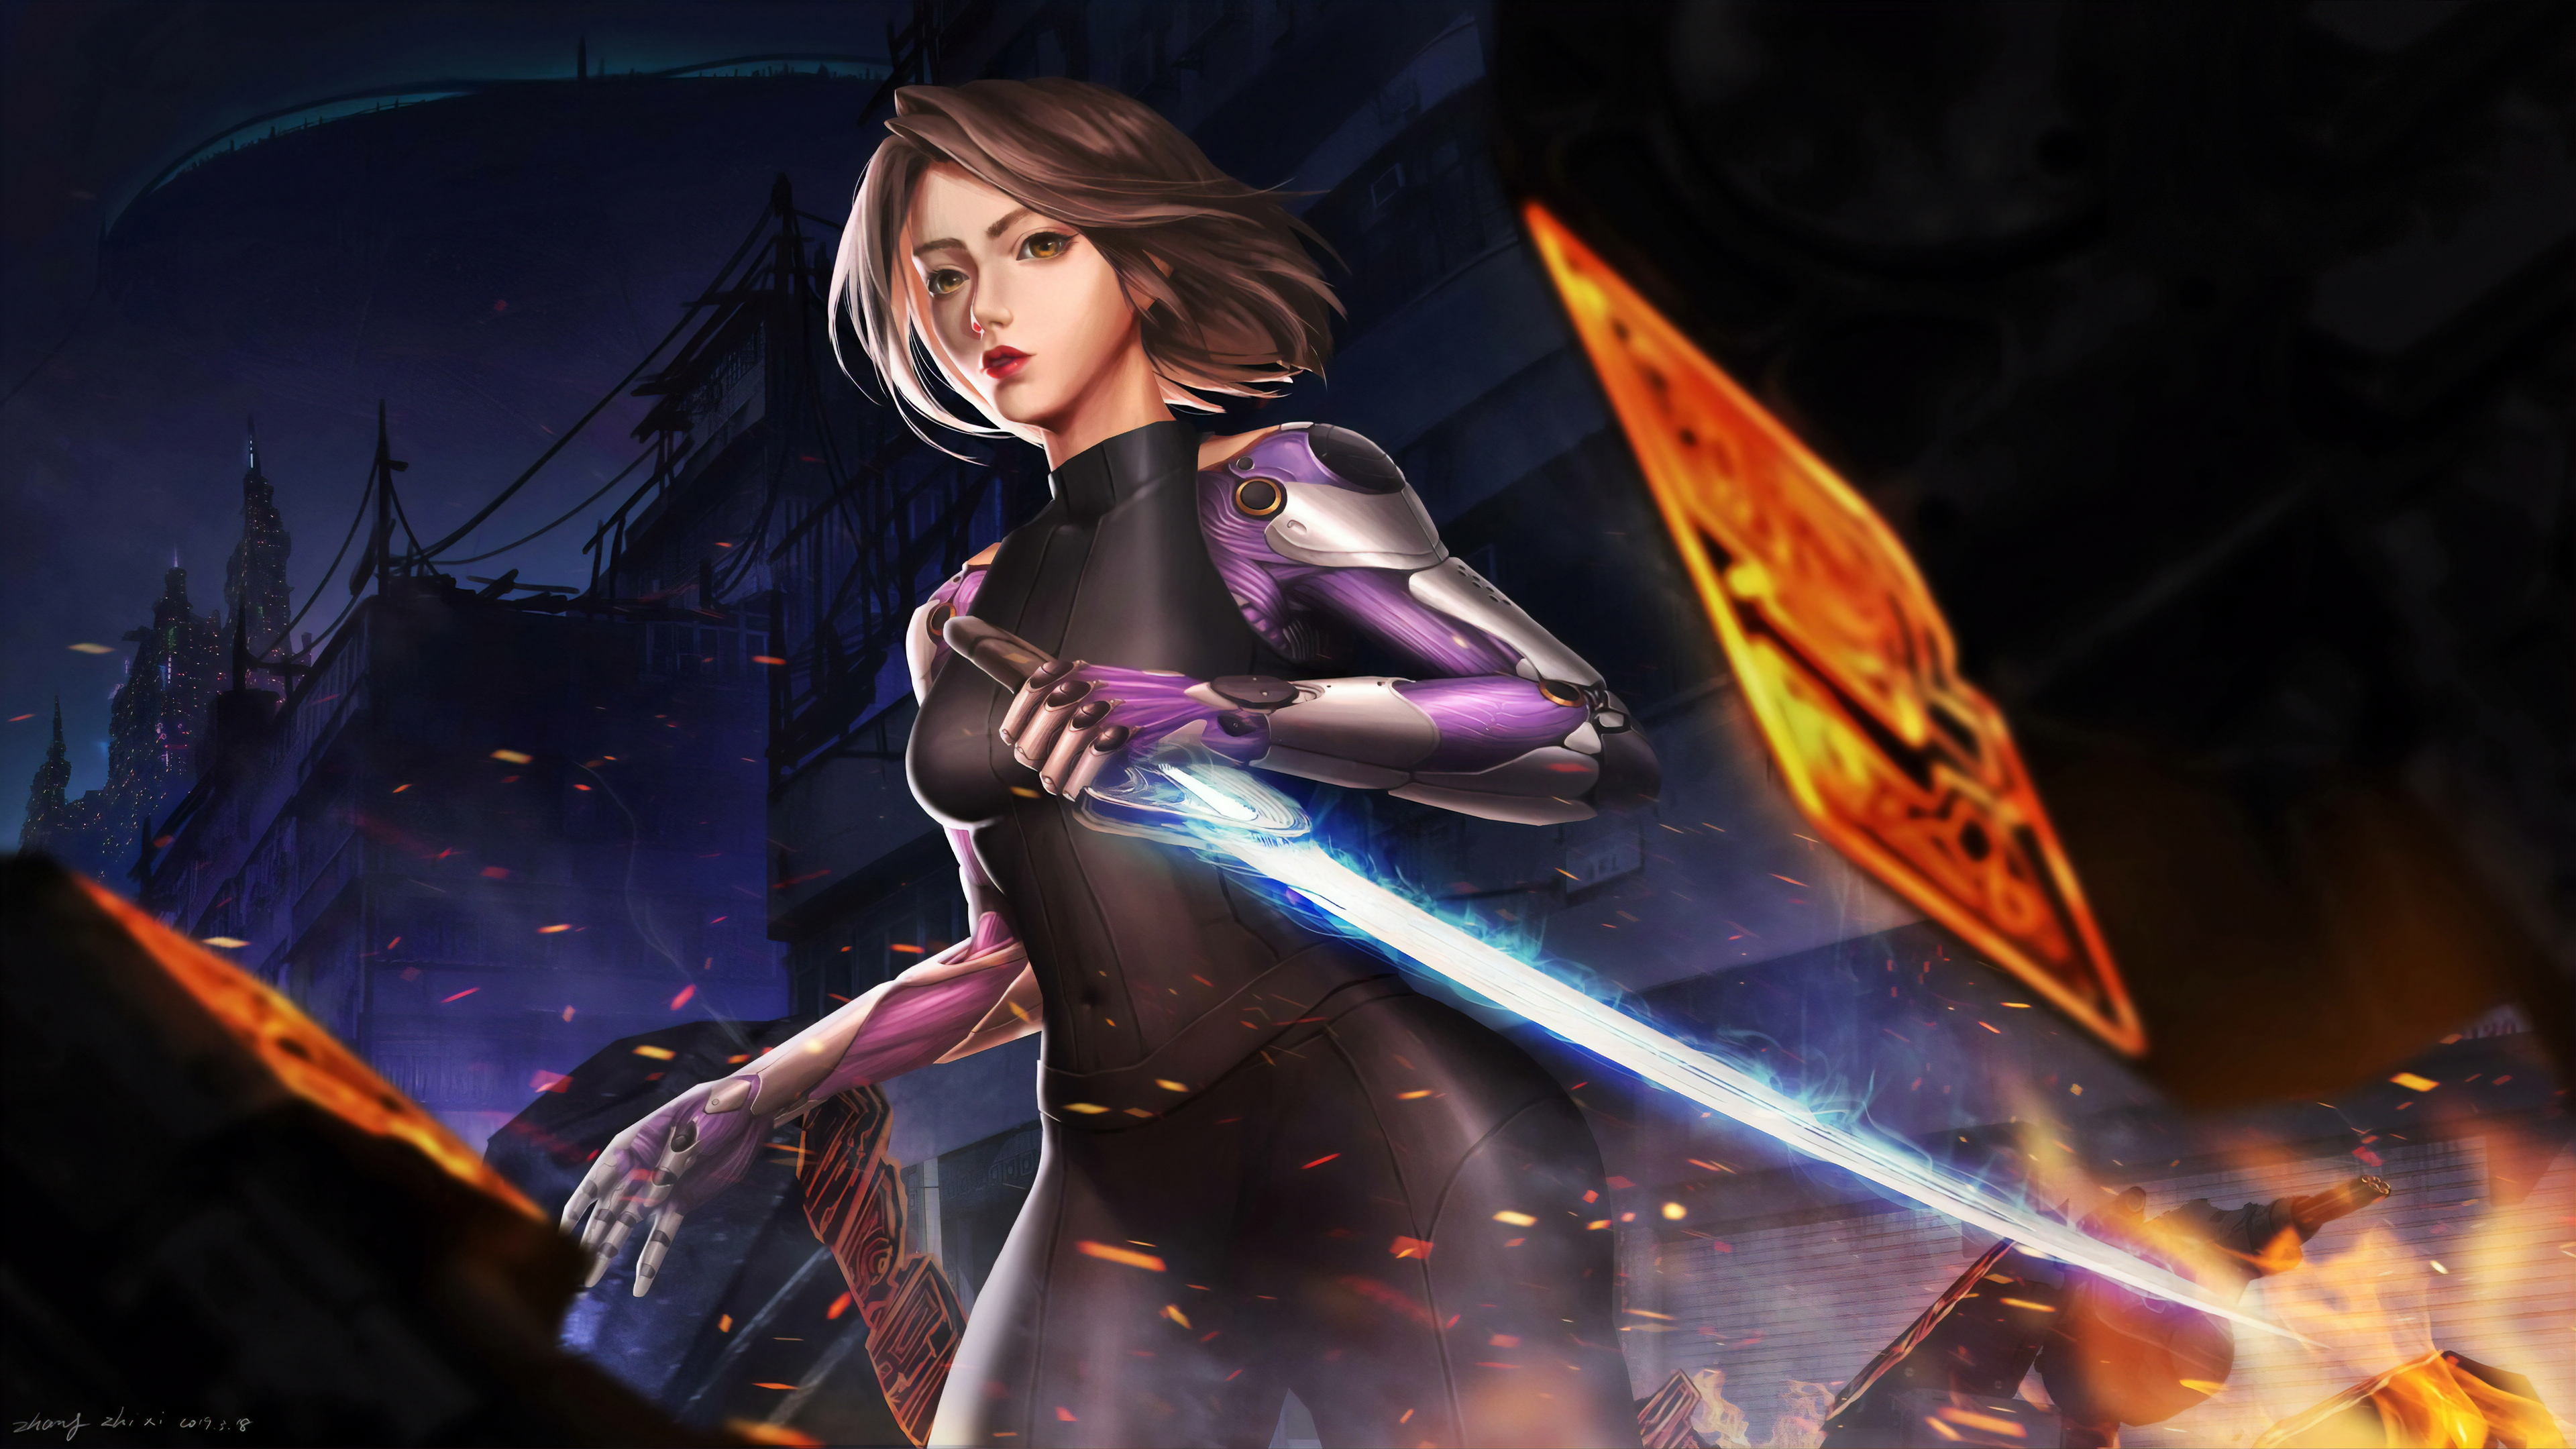 Alita Battle Angel 2 Plot Theories Will there be another Motorball Tournament in Alita Sequel